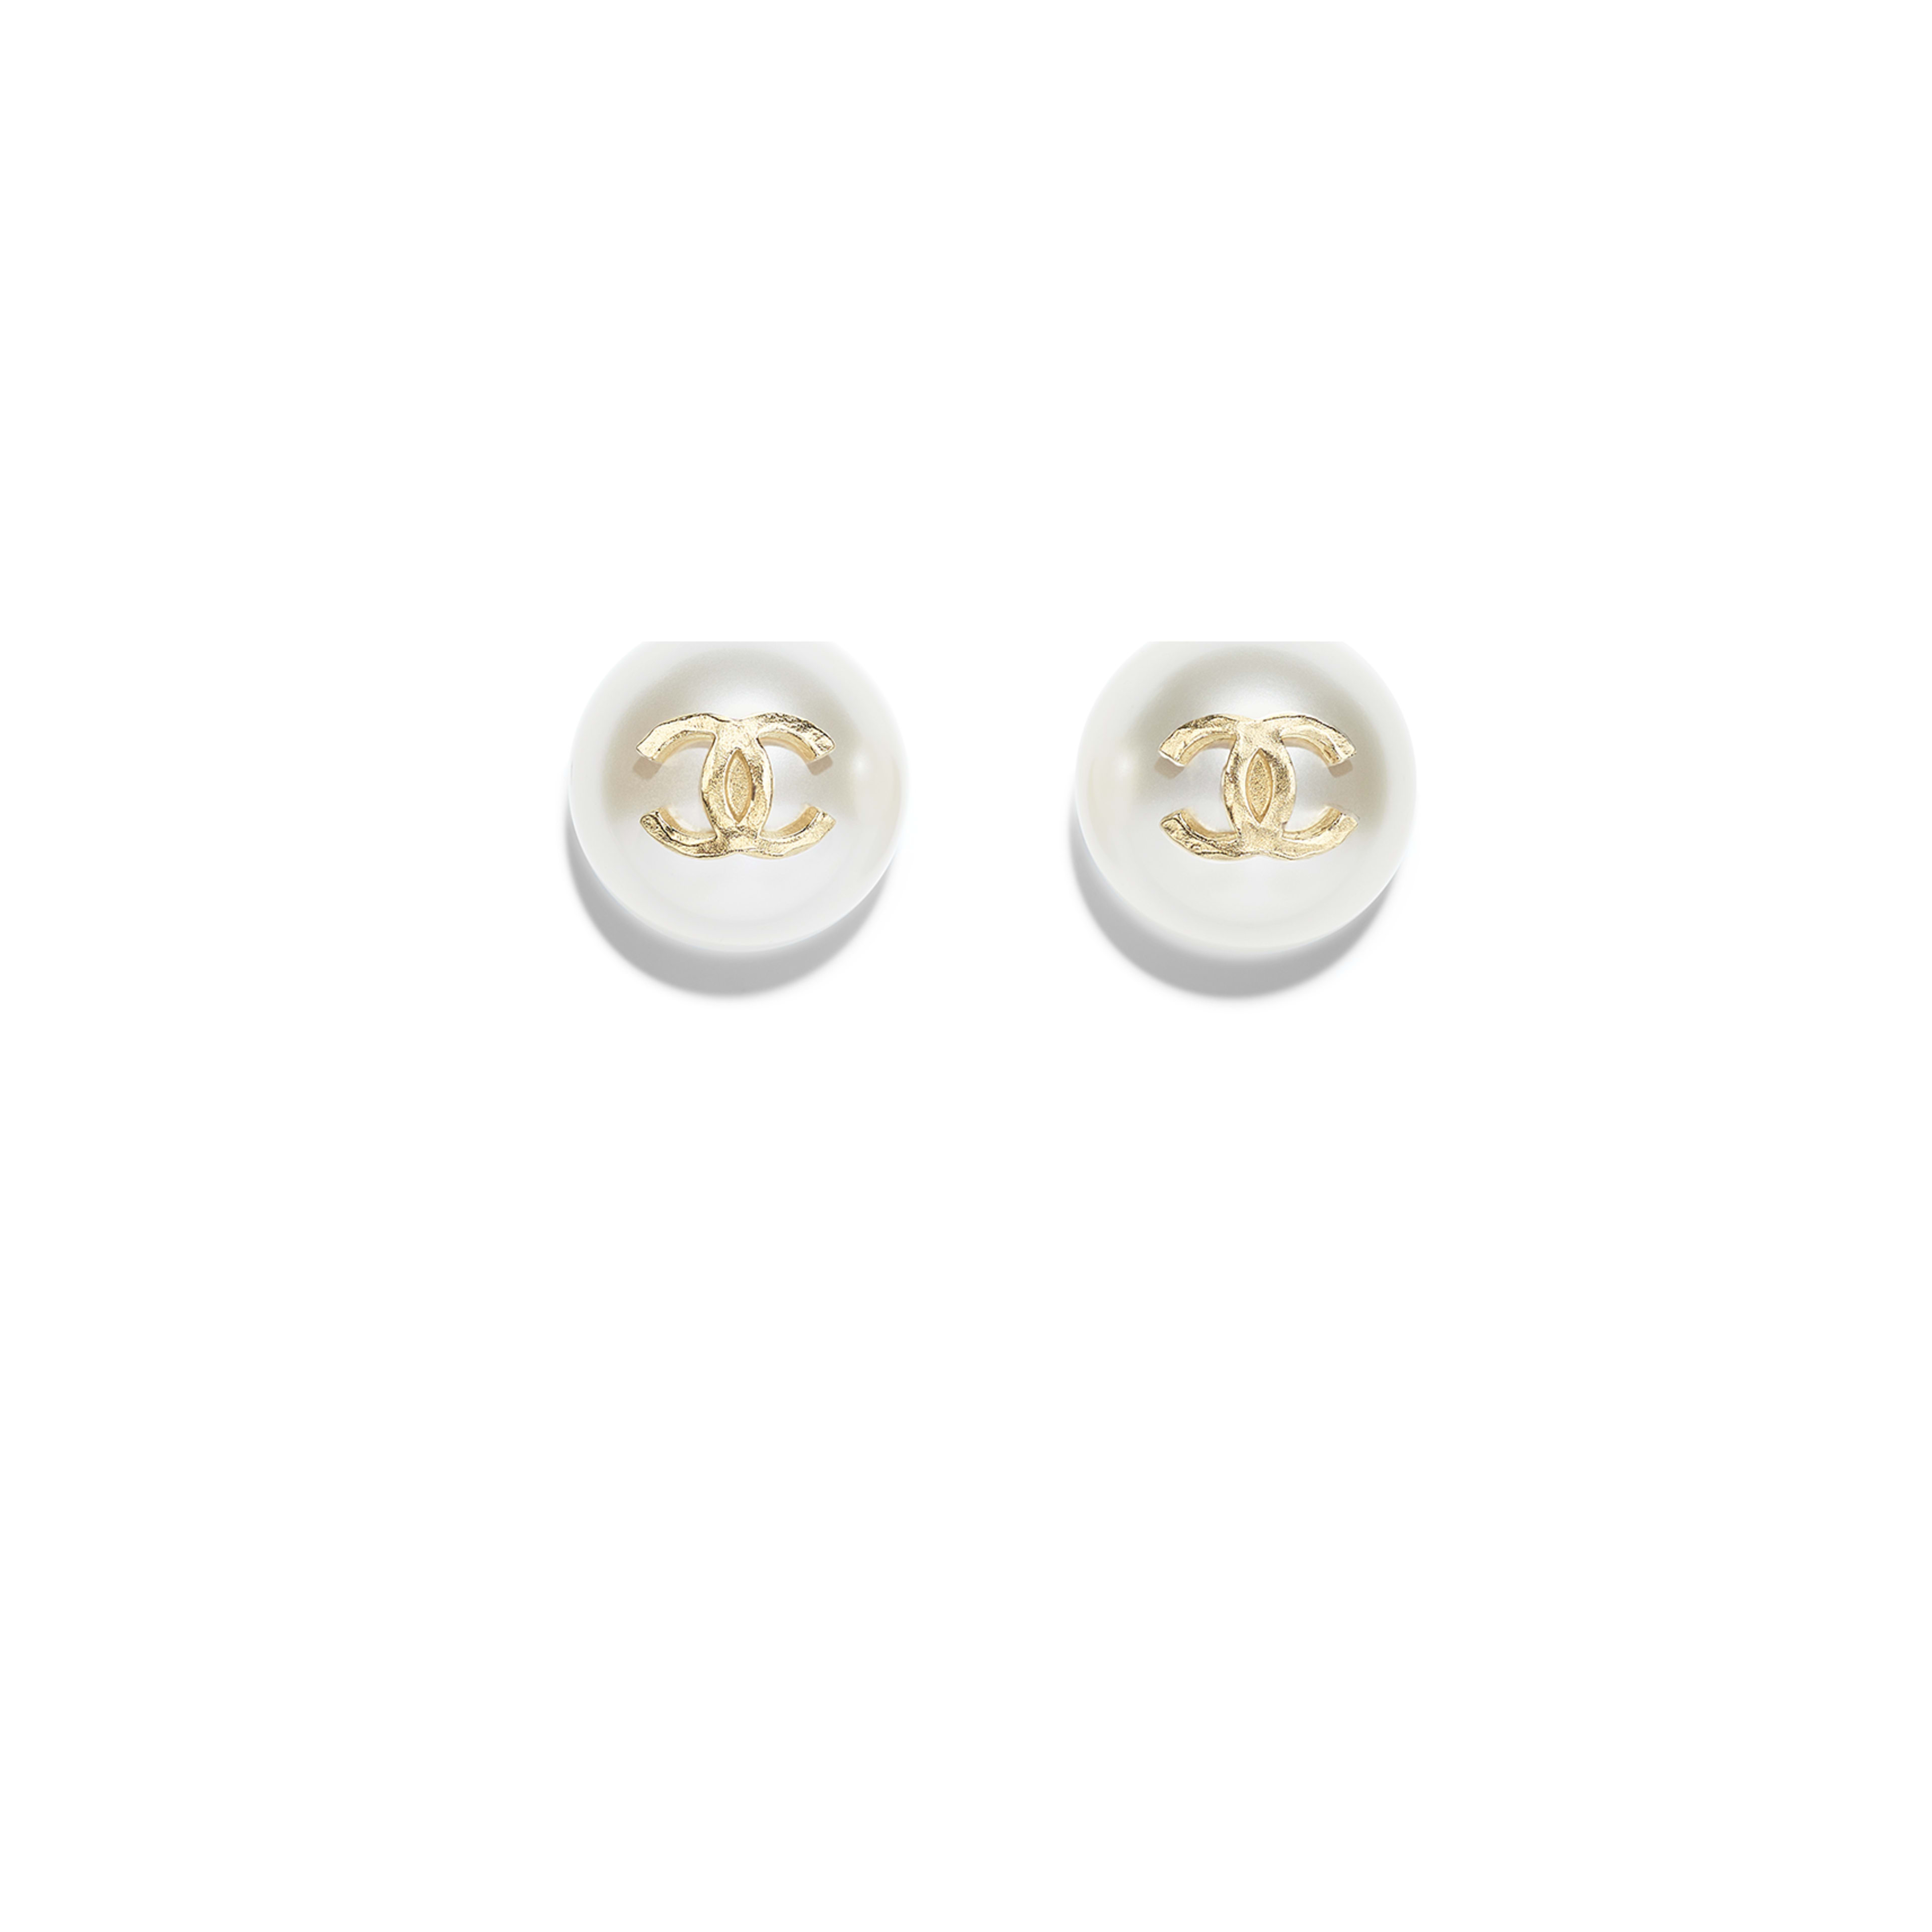 Earrings - Gold & Pearly White - Metal & Resin - Default view - see full sized version